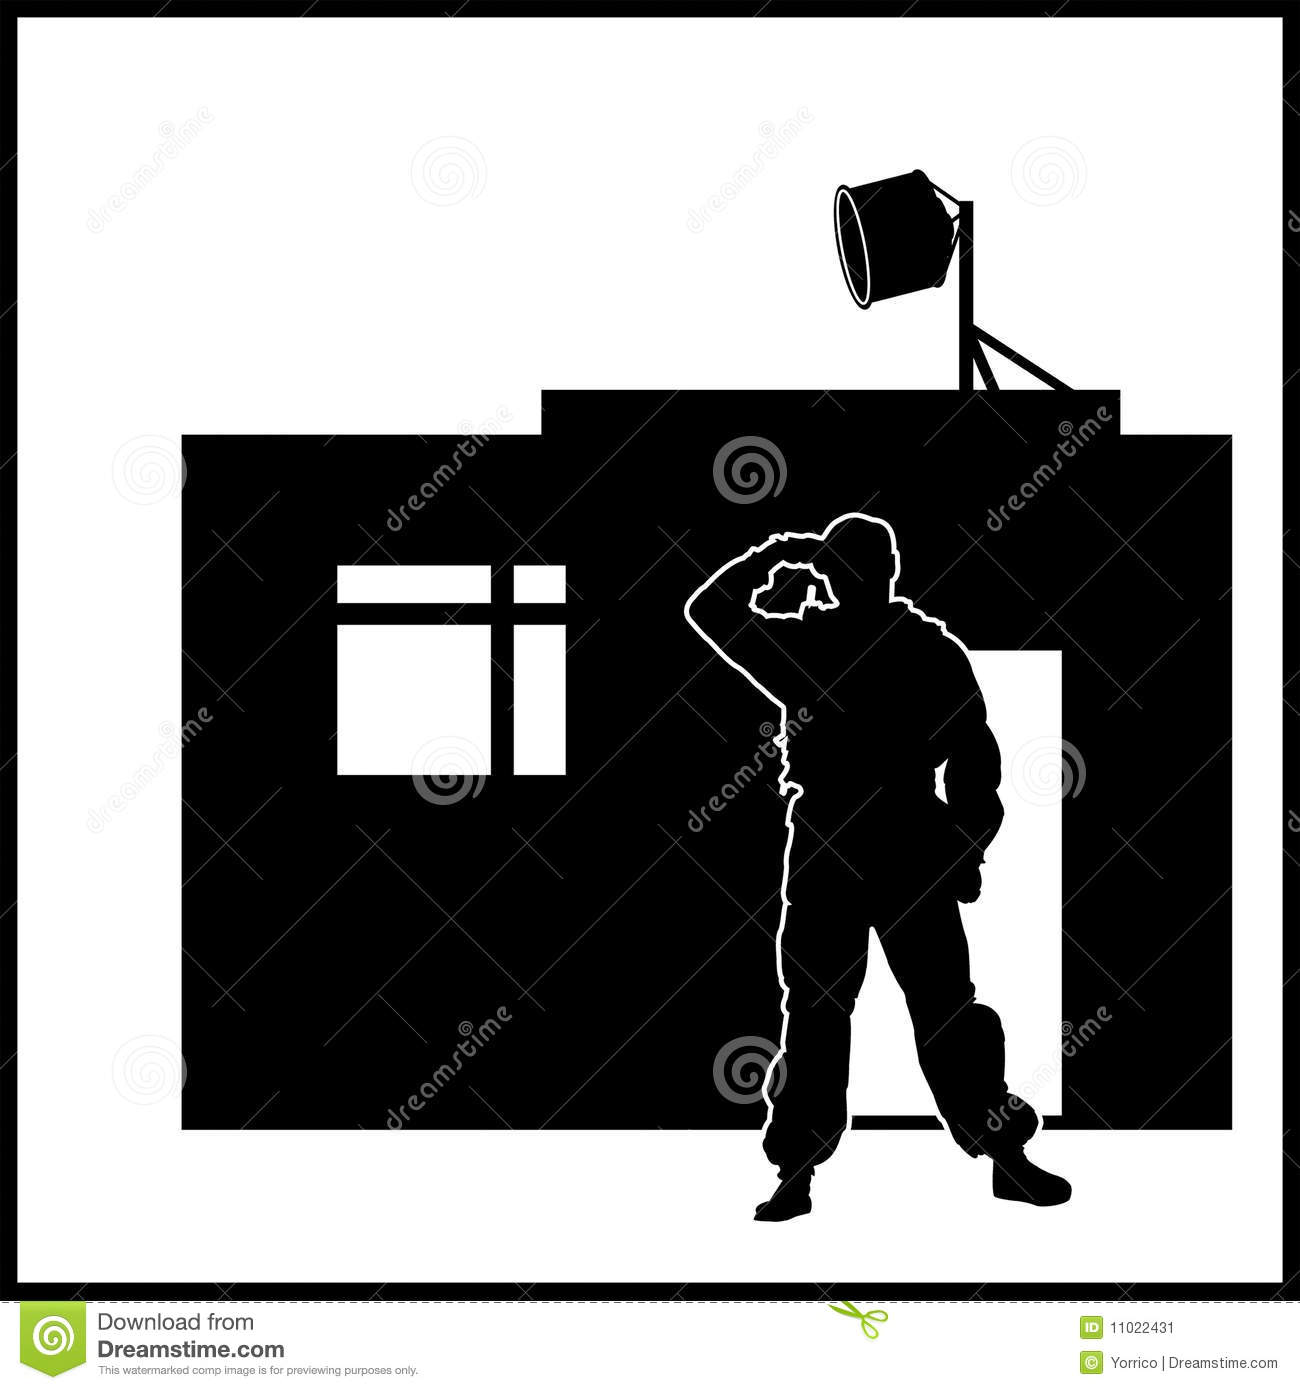 watchman clipart - photo #29